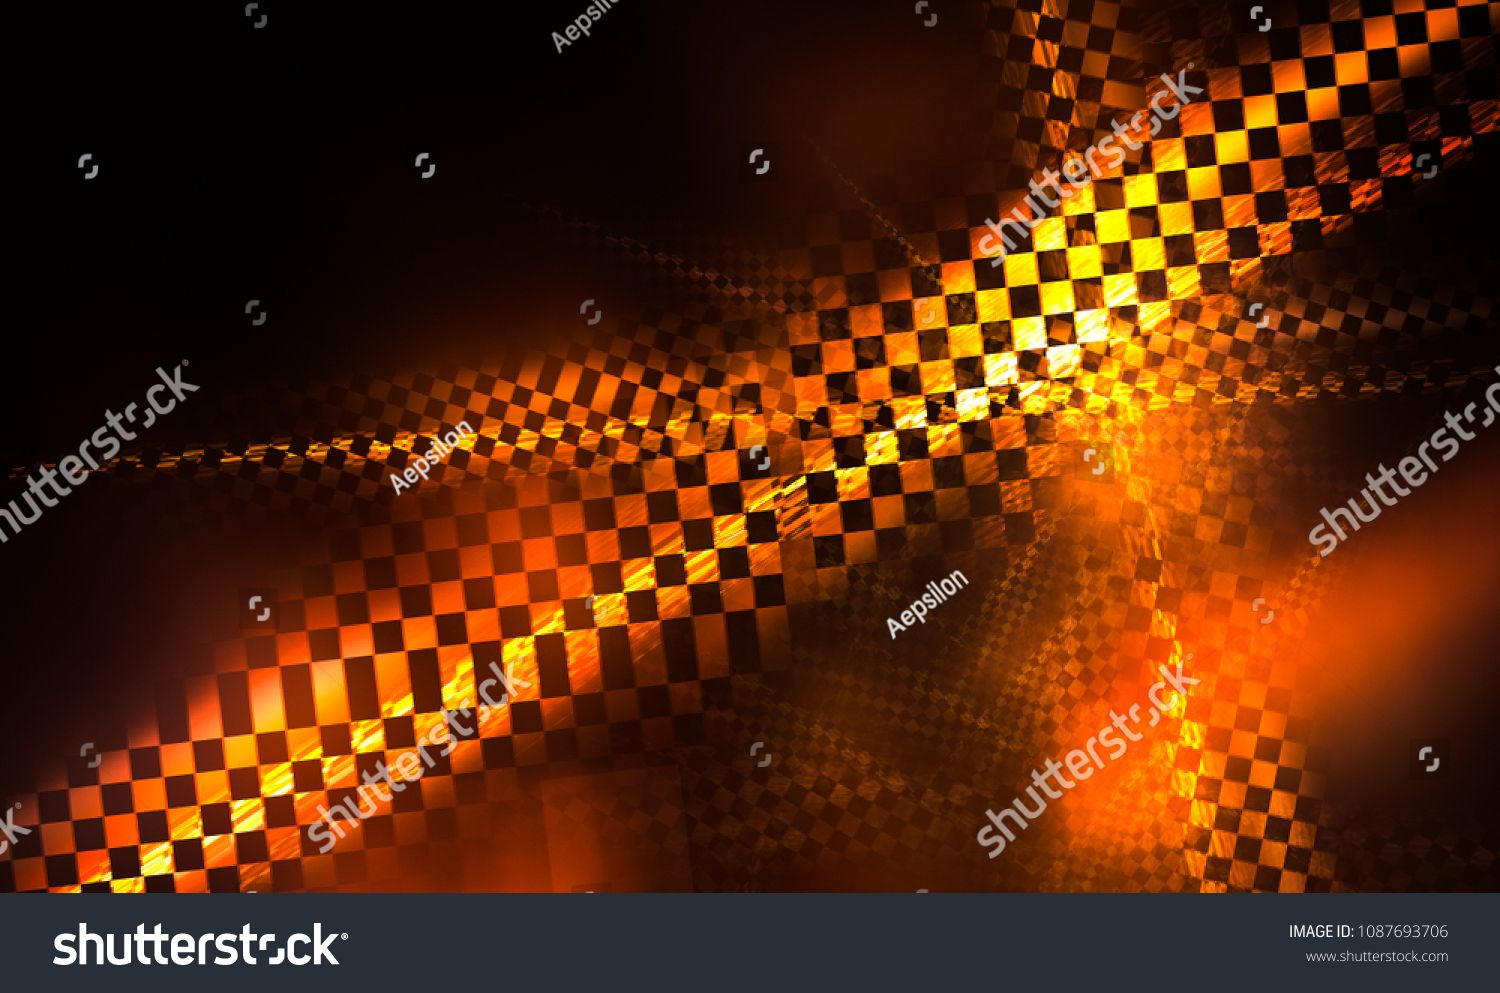 Racing abstract background. It contains elements of the checkered flag,  suitable for design of the categories of speed, … | Abstract backgrounds,  Texture, Checkered